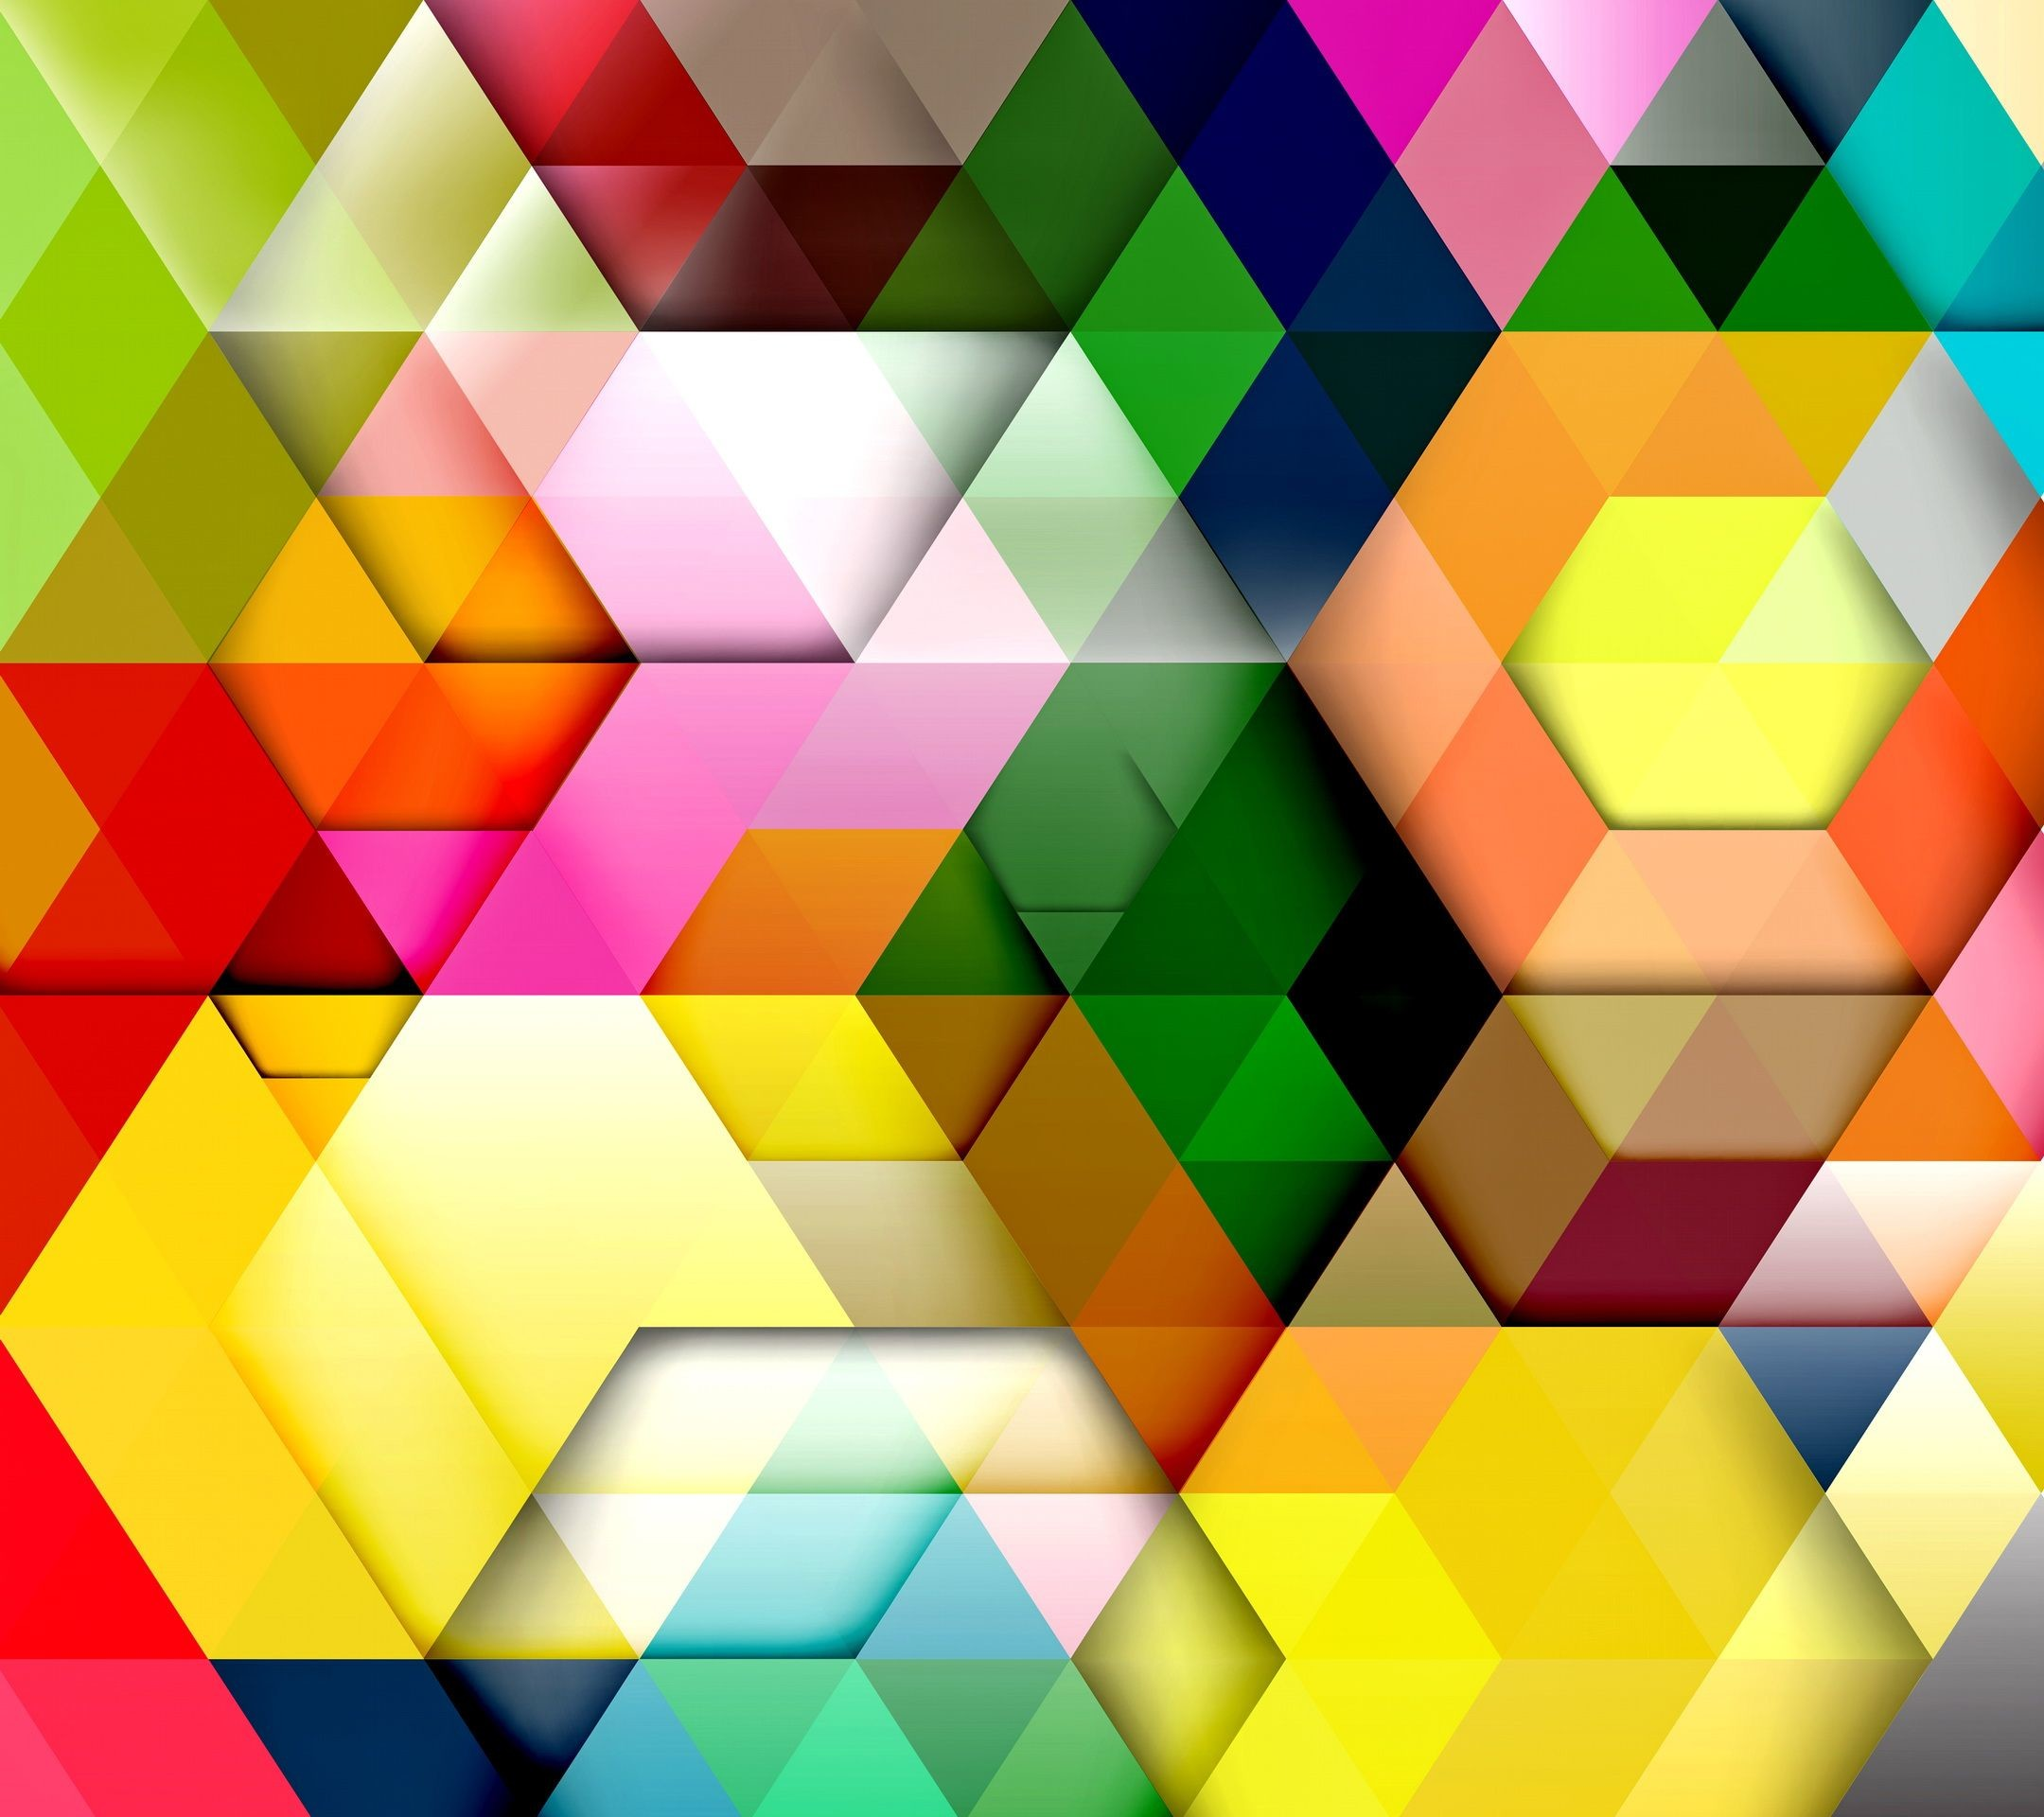 2160x1920, Colorful Abstract - Colorful Geometric Abstract - HD Wallpaper